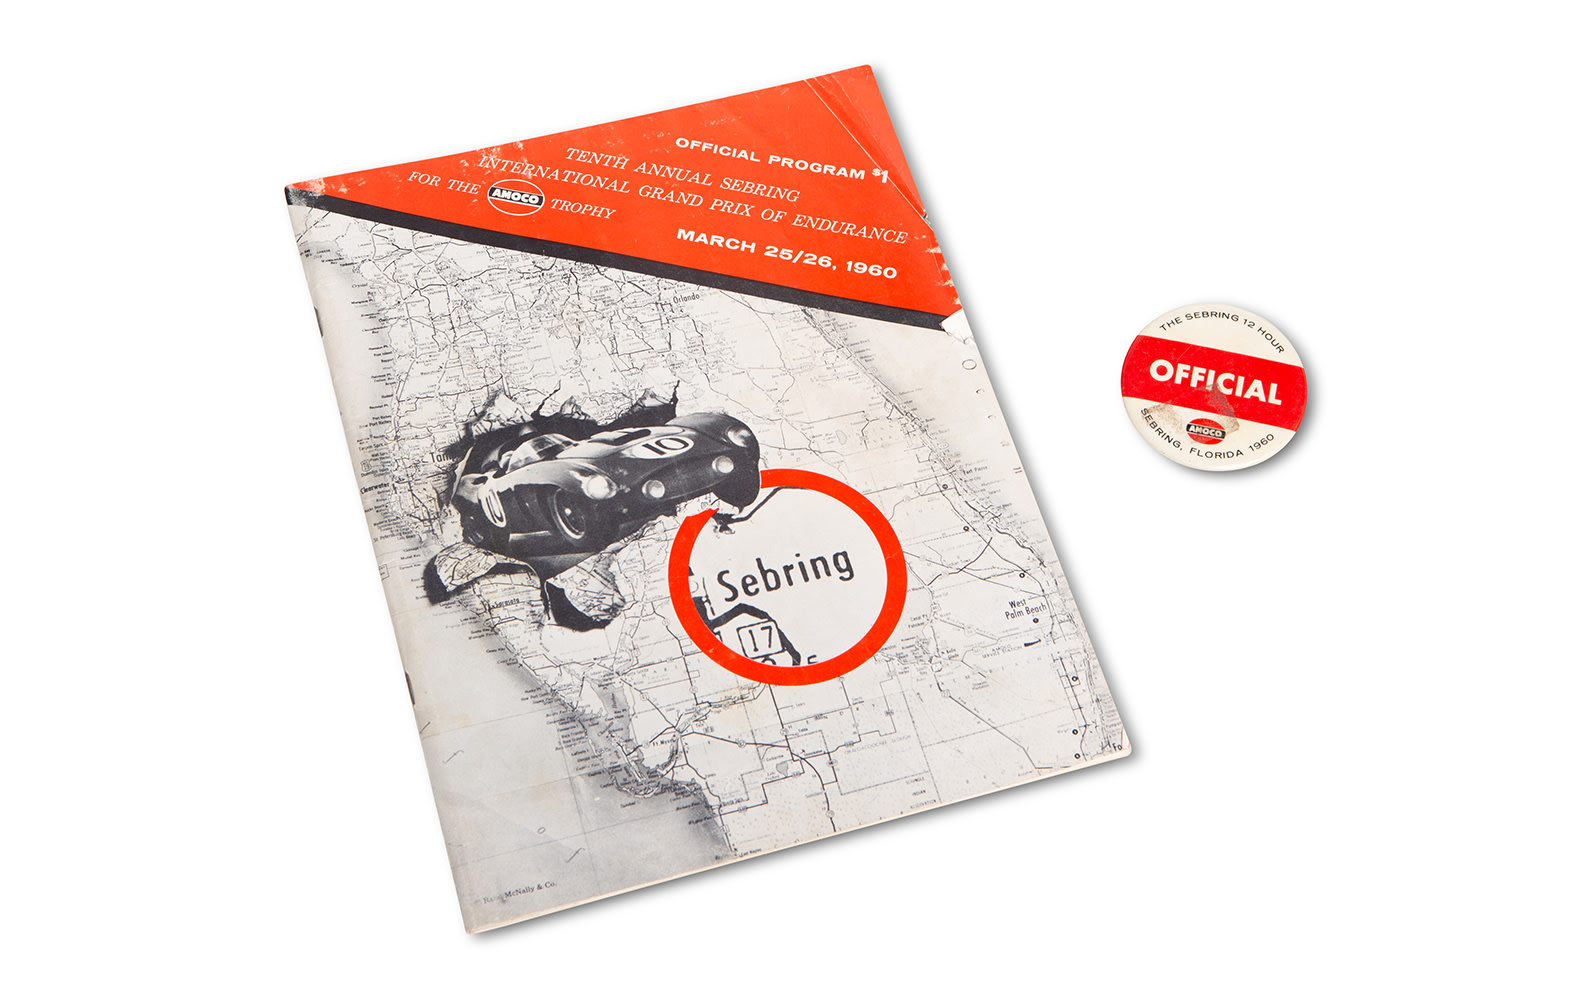 1960 12 Hours of Sebring Official Race Program and Pin